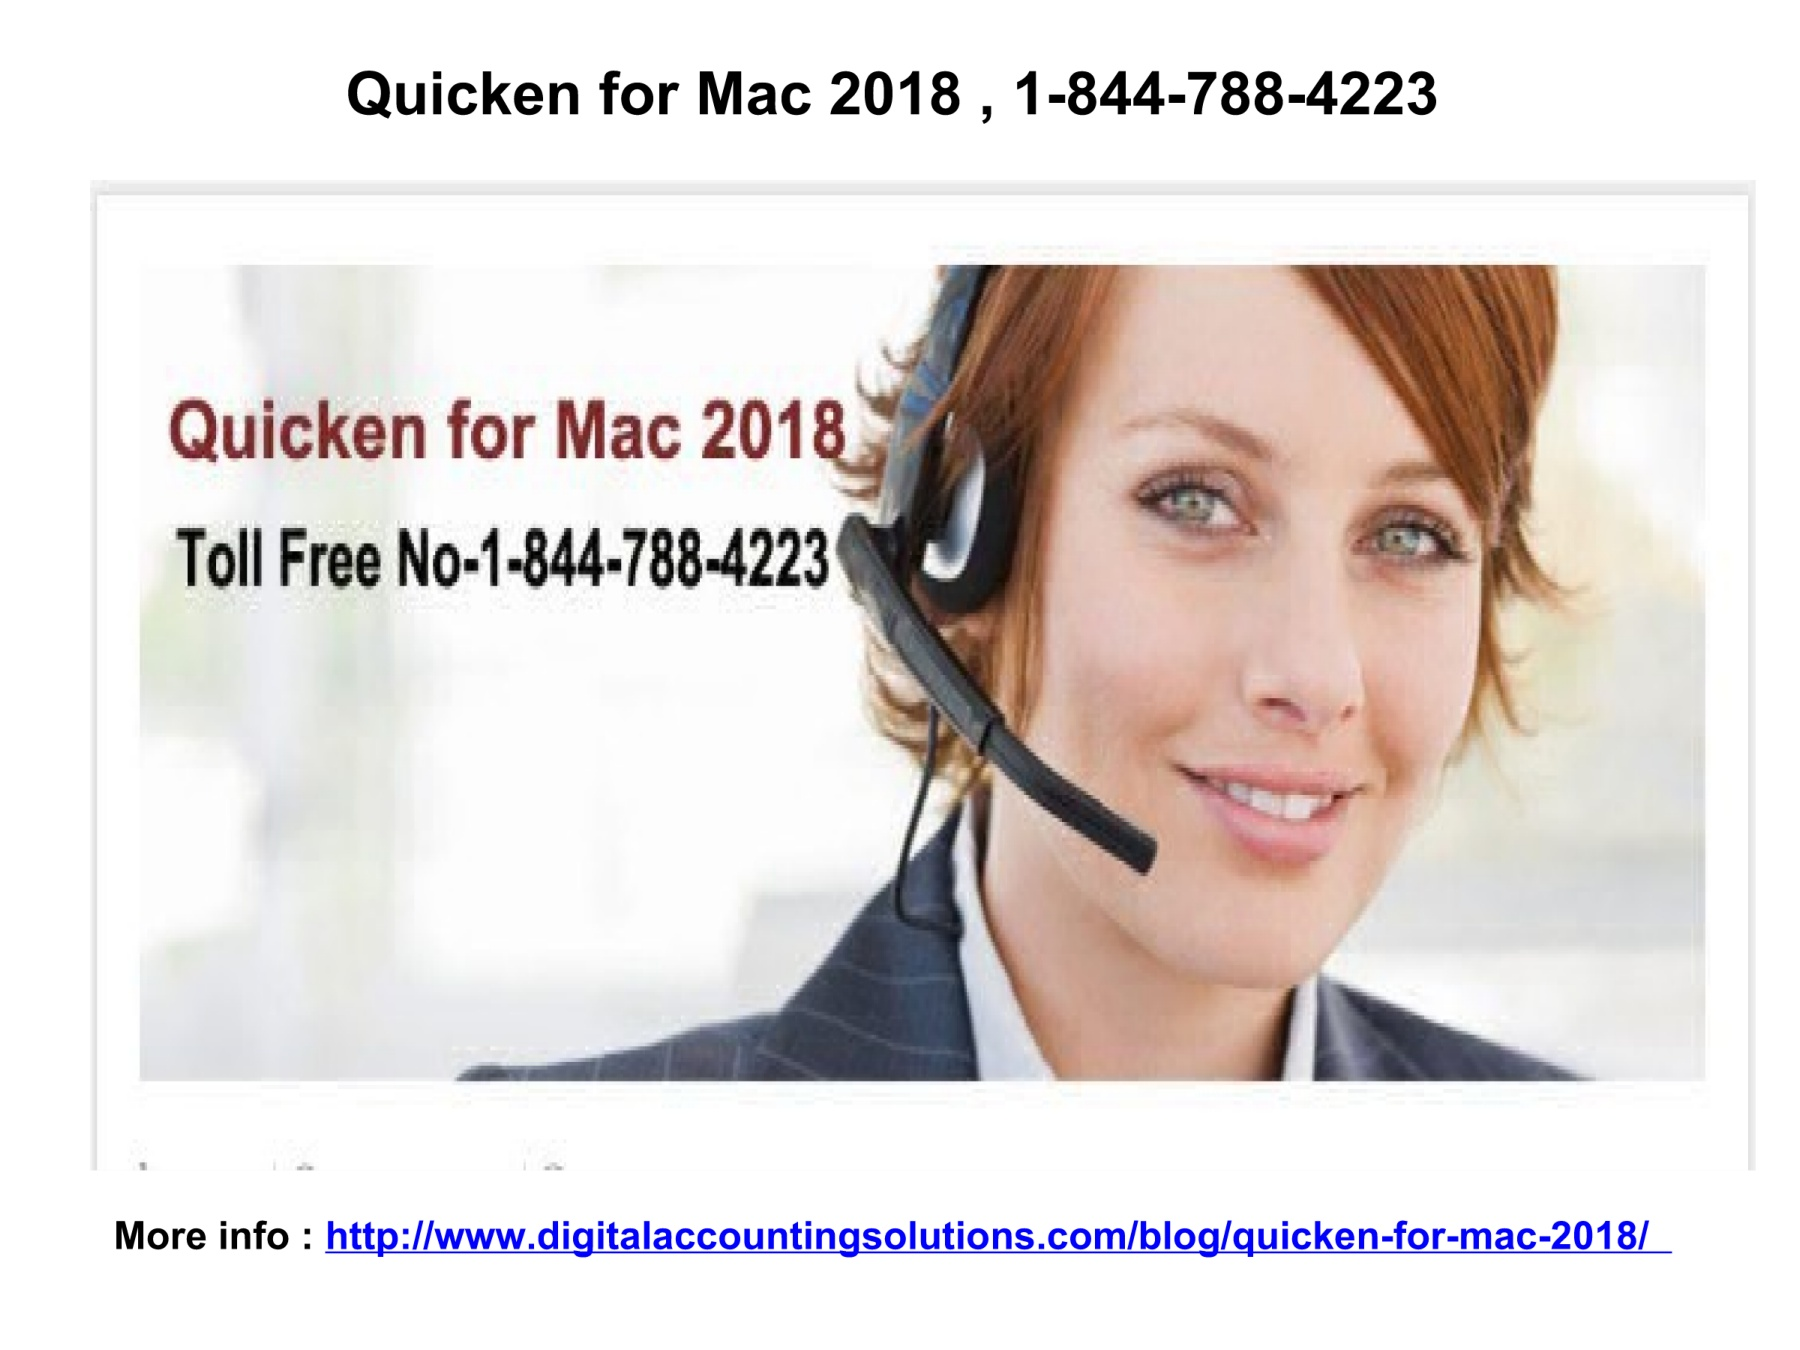 Quicken for Mac 2018 , 1-844-788-4223